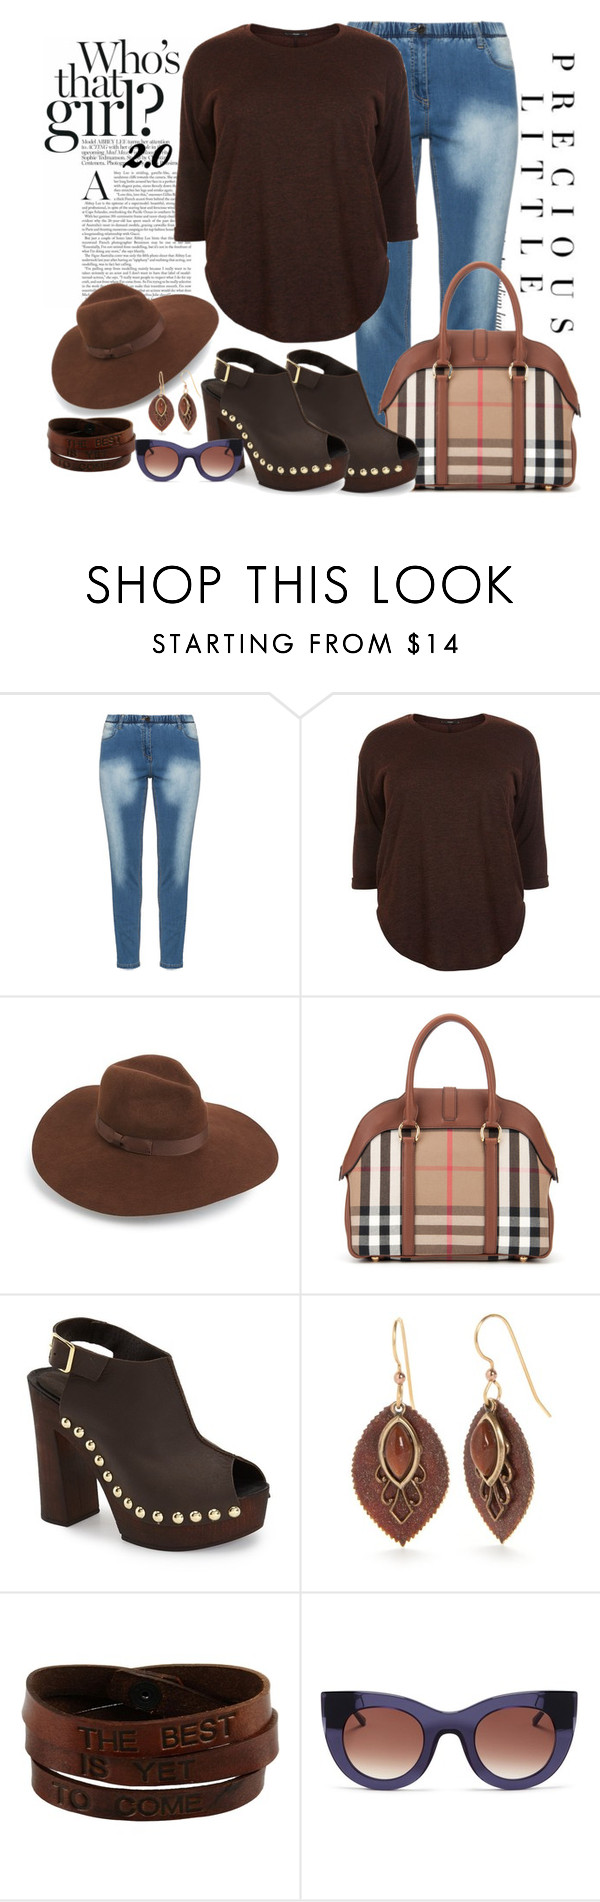 """""""I will not be Denied"""" by ljbminime ❤ liked on Polyvore featuring Agent Provocateur, Zhenzi, New Look, Lack of Color, Burberry, Charles David, Silver Forest, Saddlers Union and Thierry Lasry"""